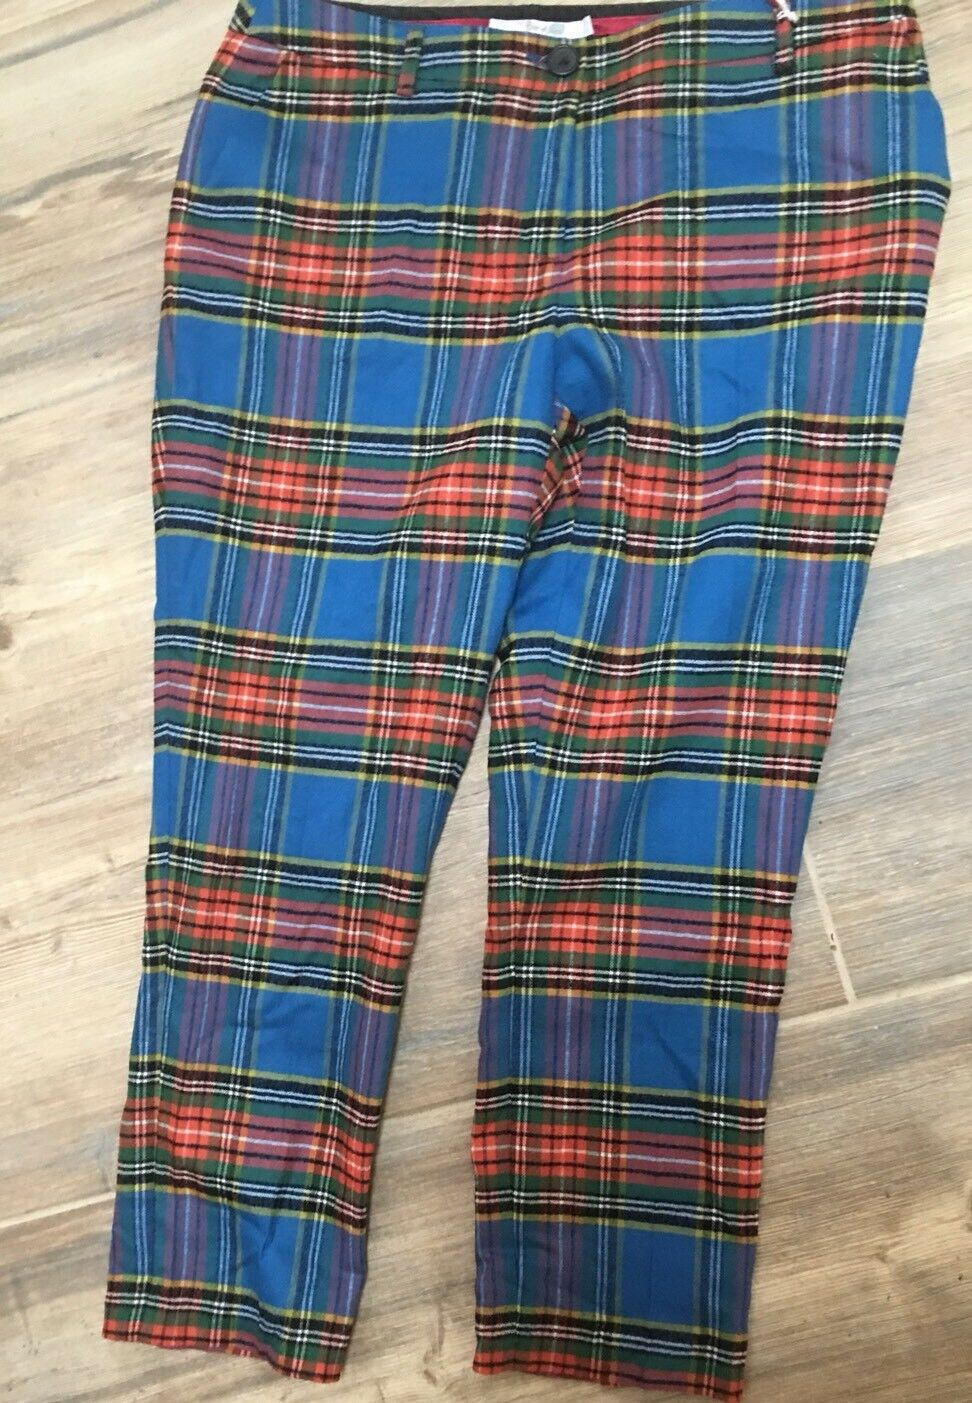 59. New Boden Blau Plaid Tartan Trousers Pants 4